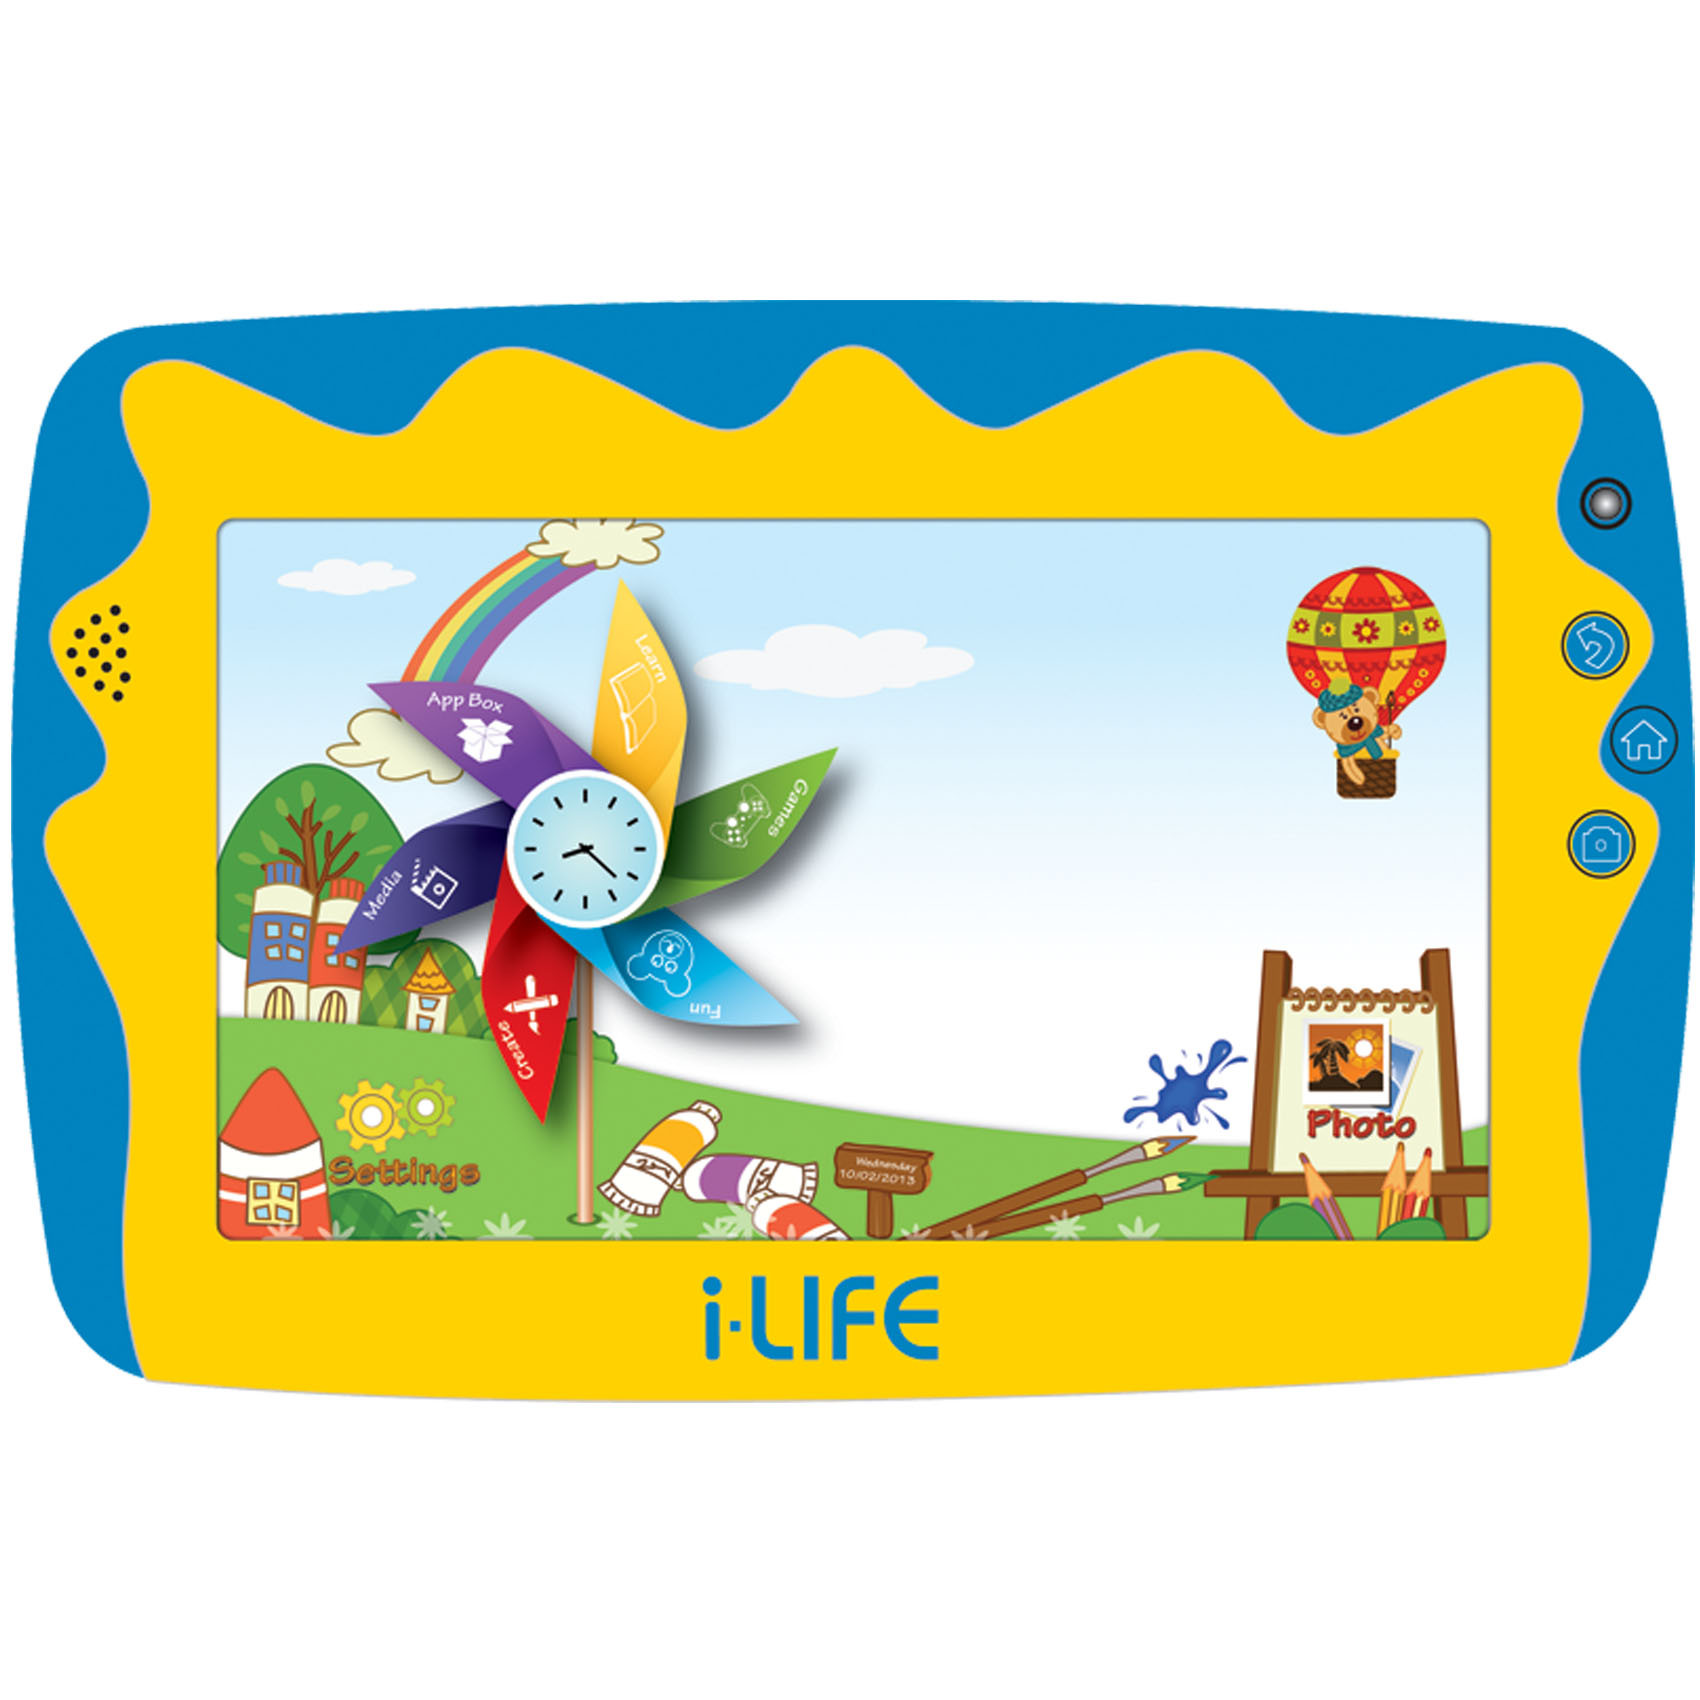 ILIFE TAB KIDS BL QC 512/8/7